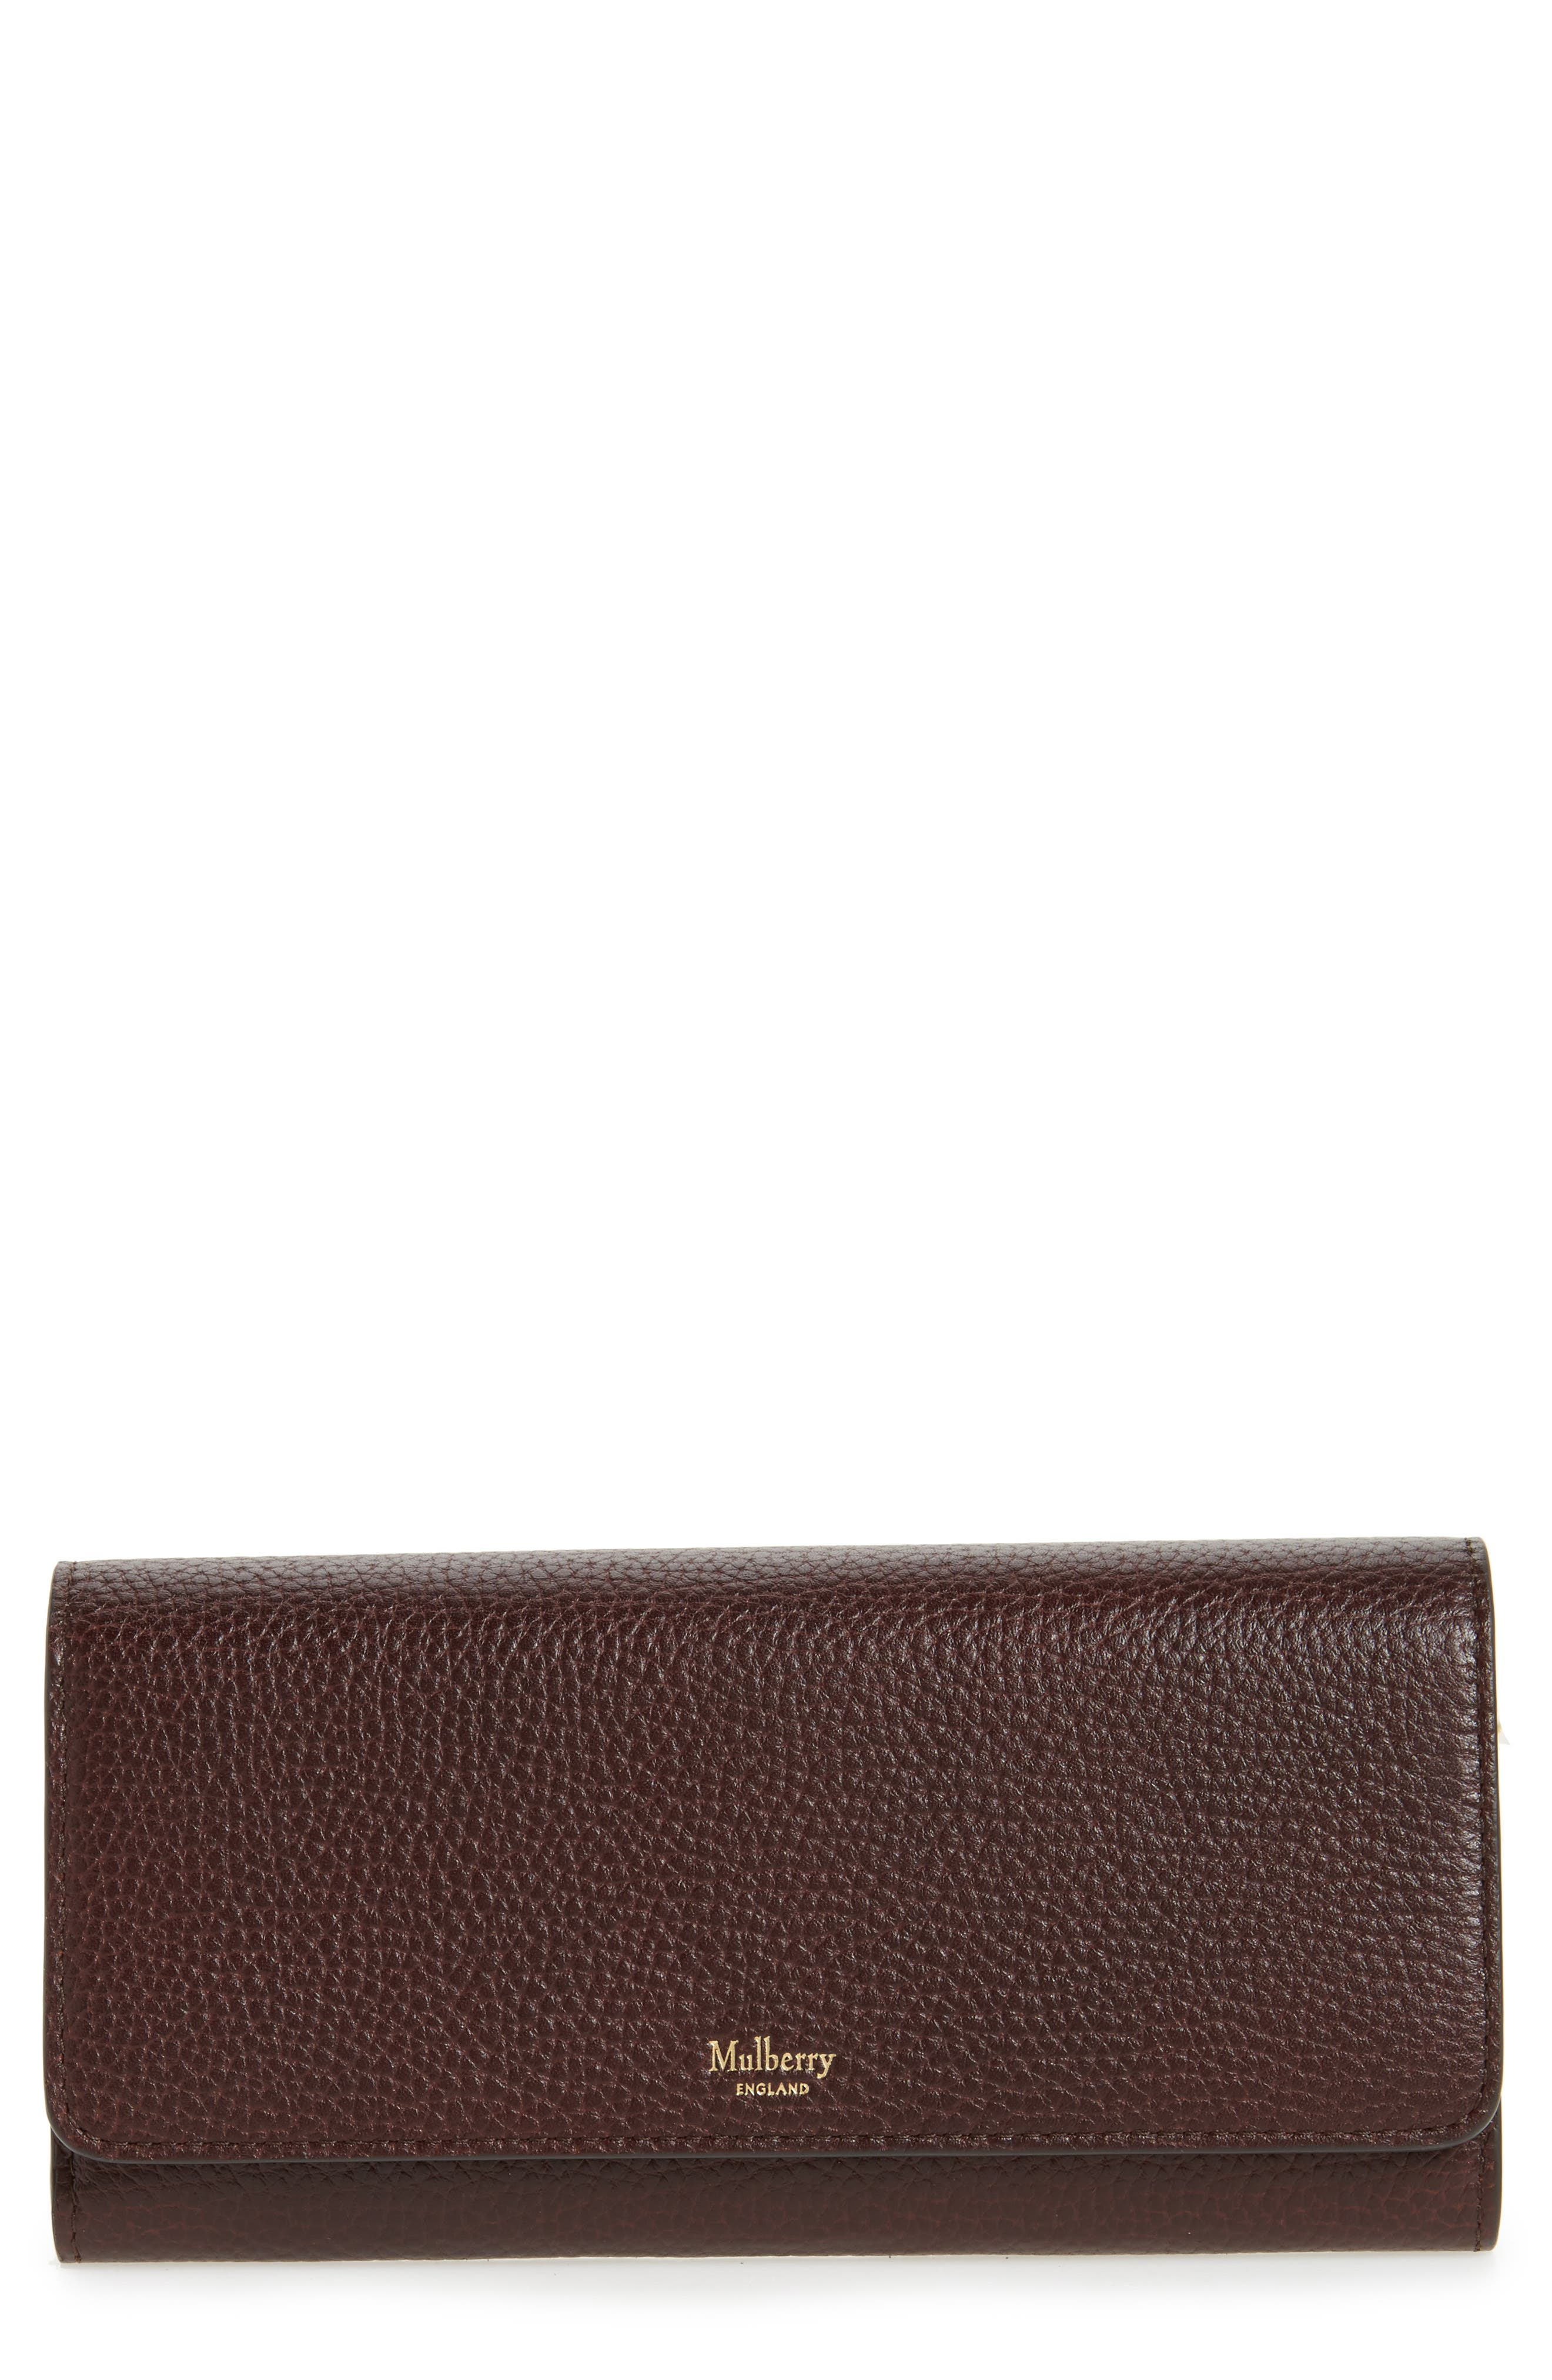 Mulberry Leather Continental Wallet